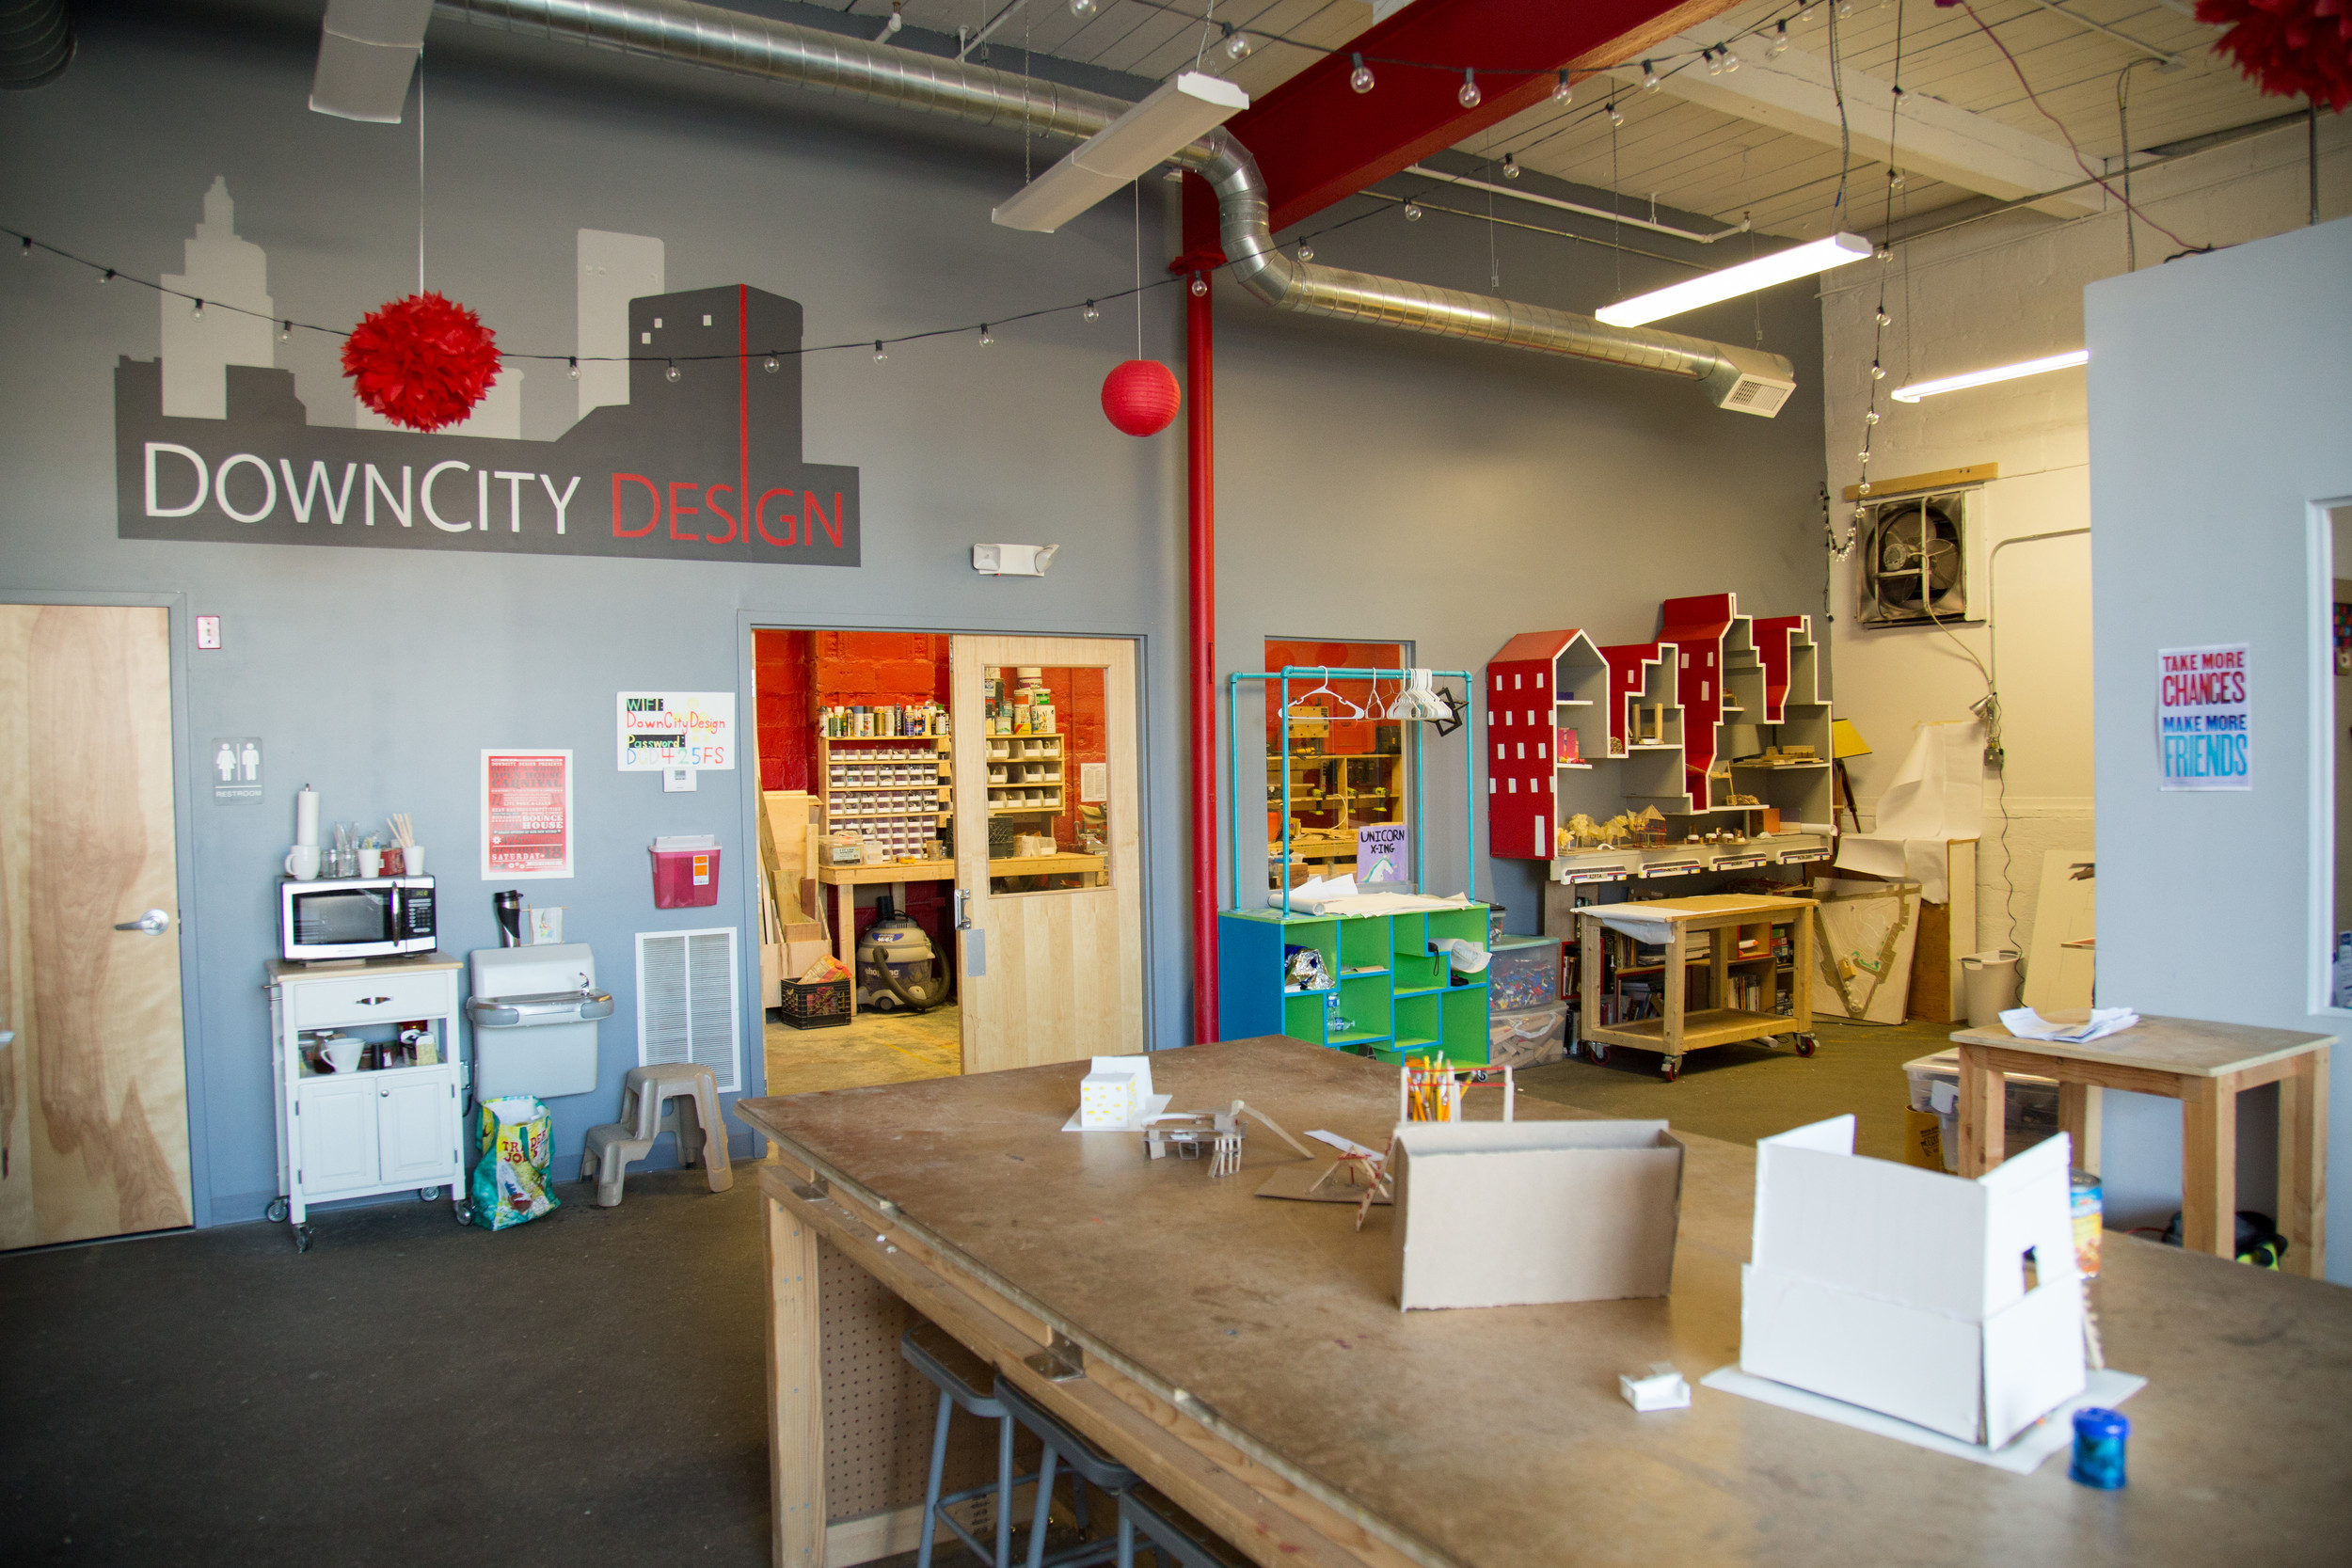 DownCity Design's new brick-and-mortar location provides its students with state of the art tools and resources.